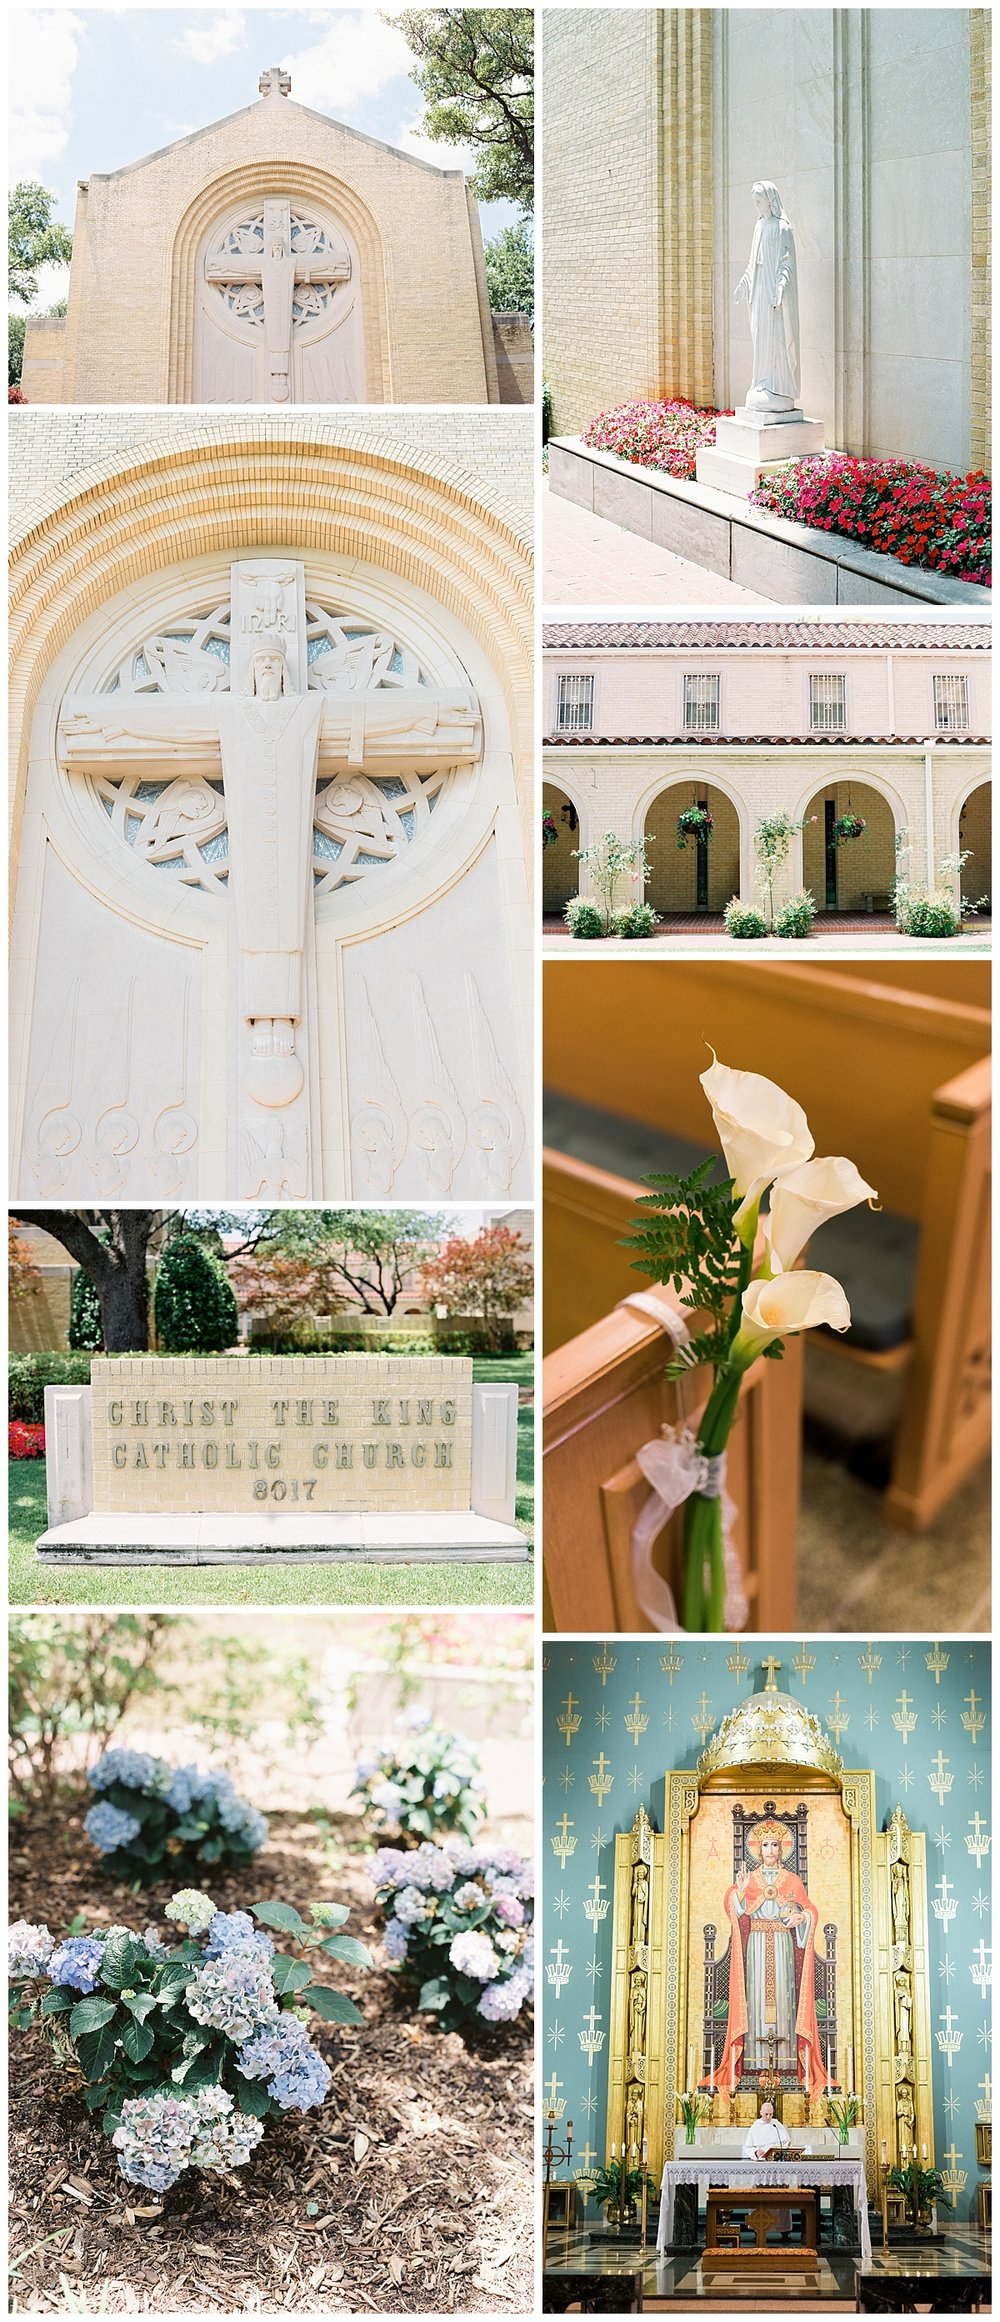 christ-the-king-catholic-church-wedding-ar-photography-3.jpg